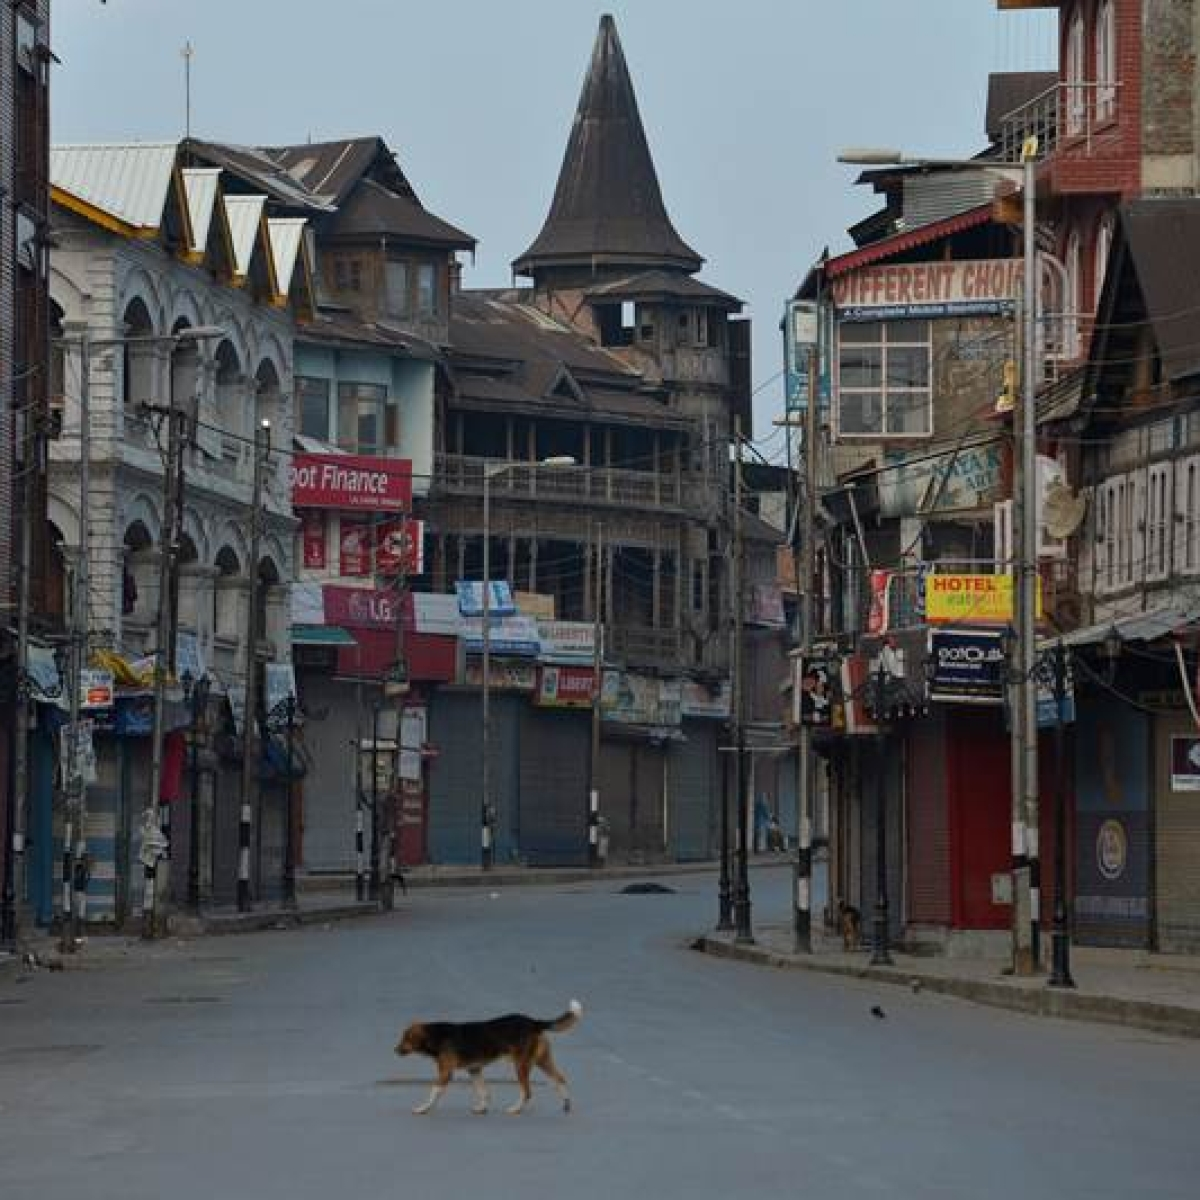 FPJ Explains: J&K govt to annul all action taken under Roshni Act - what does this mean?